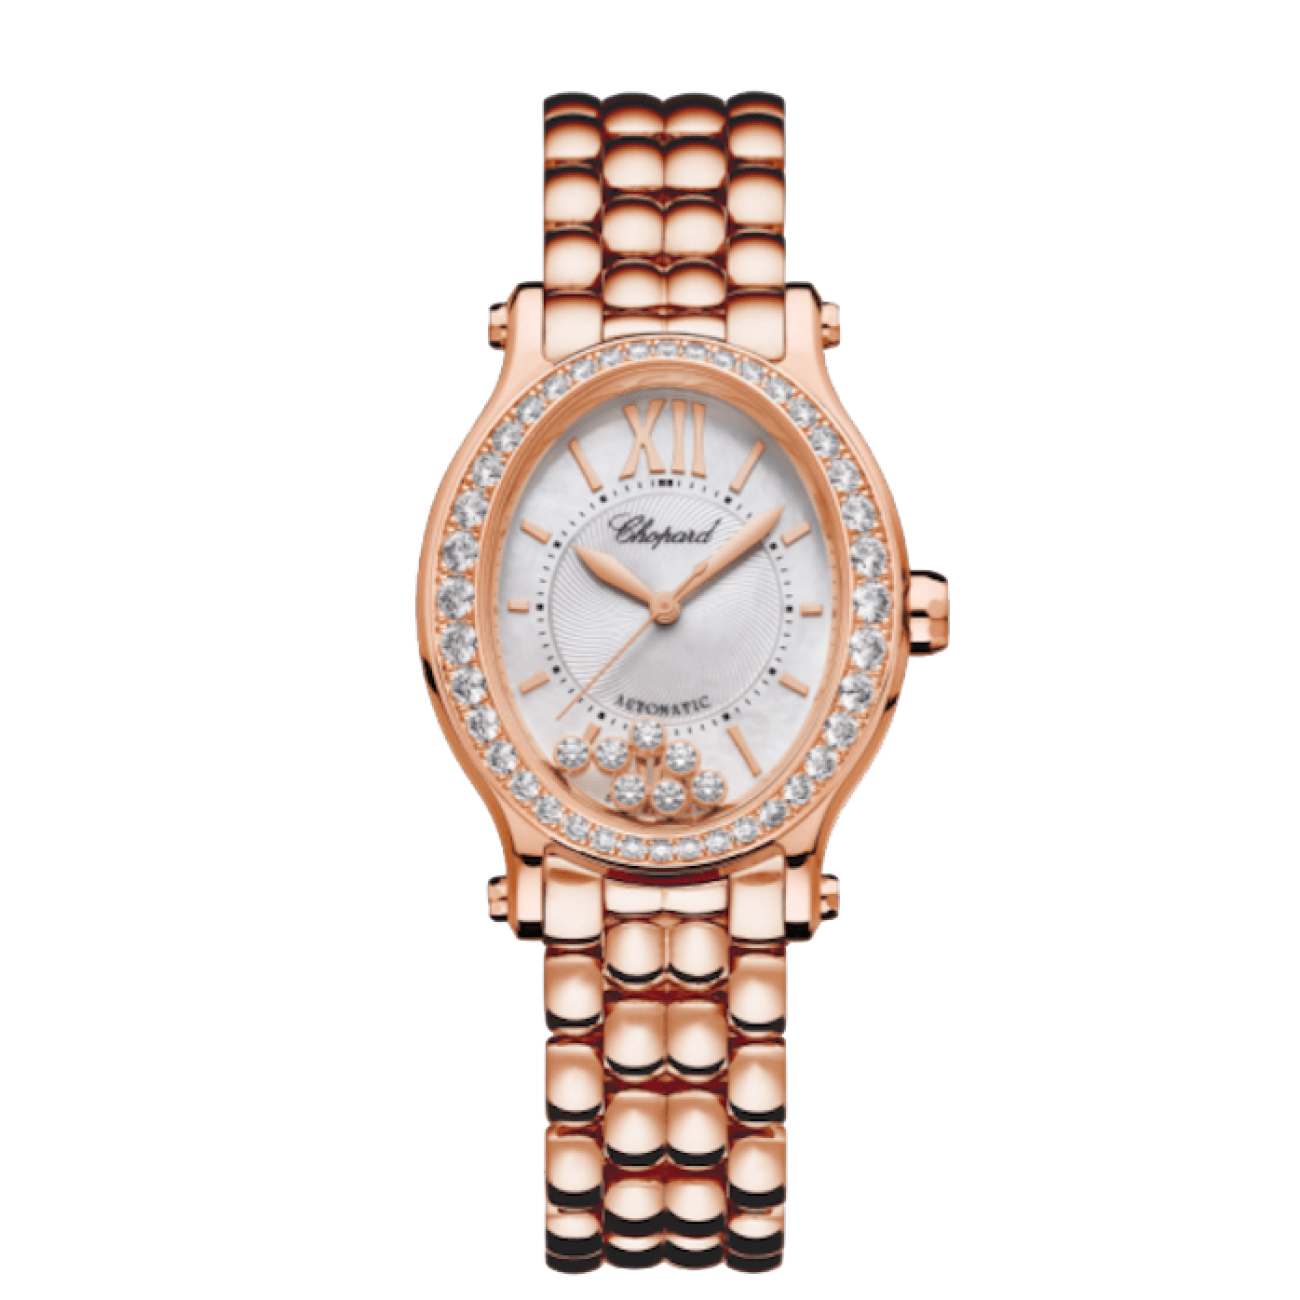 Chopard Watches - HAPPY SPORT OVAL 18K ROSE GOLD AND DIAMONDS | Manfredi Jewels